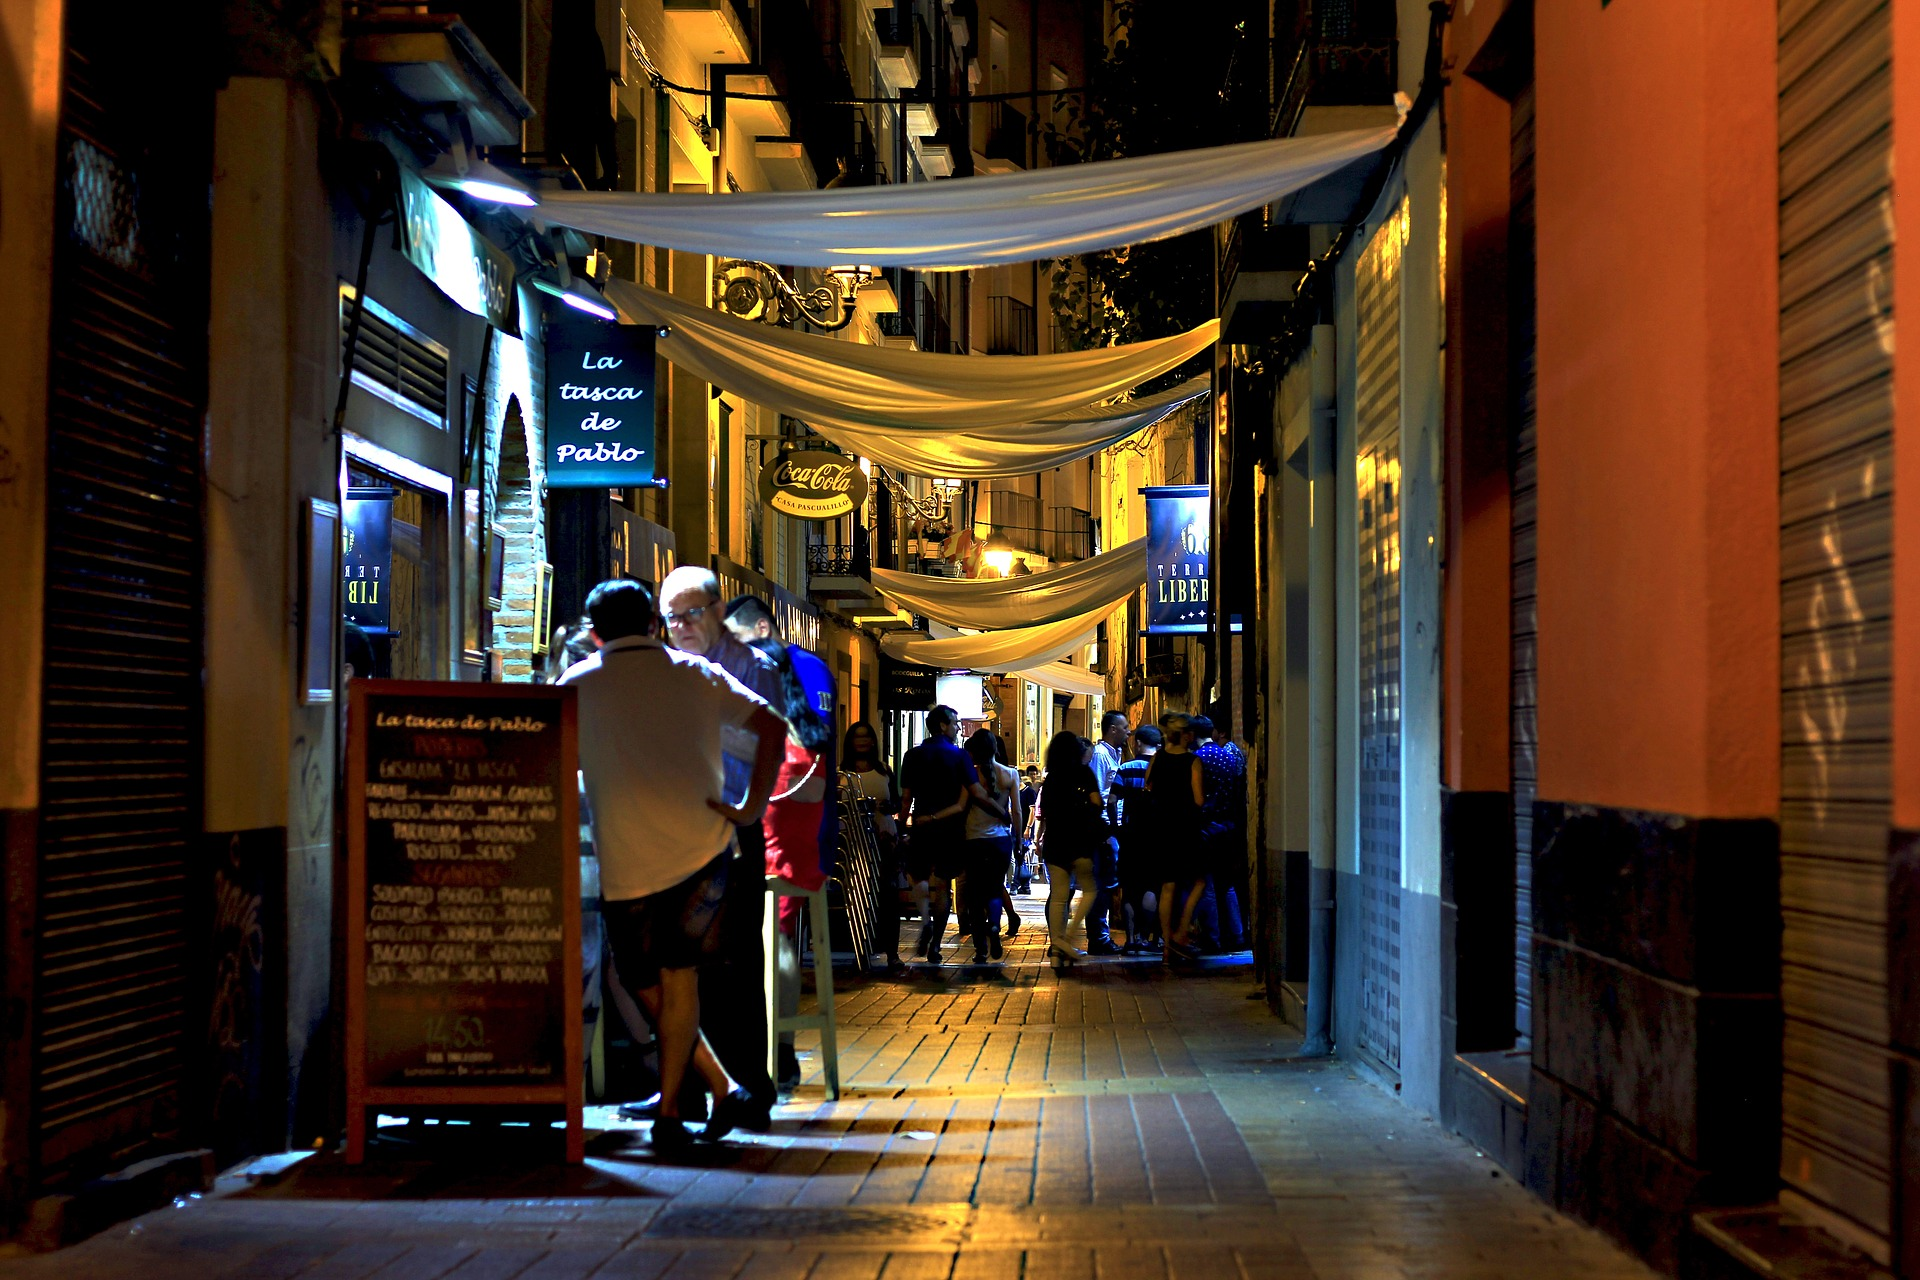 People in a bar at night in Spain. Photo by Daniel_Nebreda on Pixabay